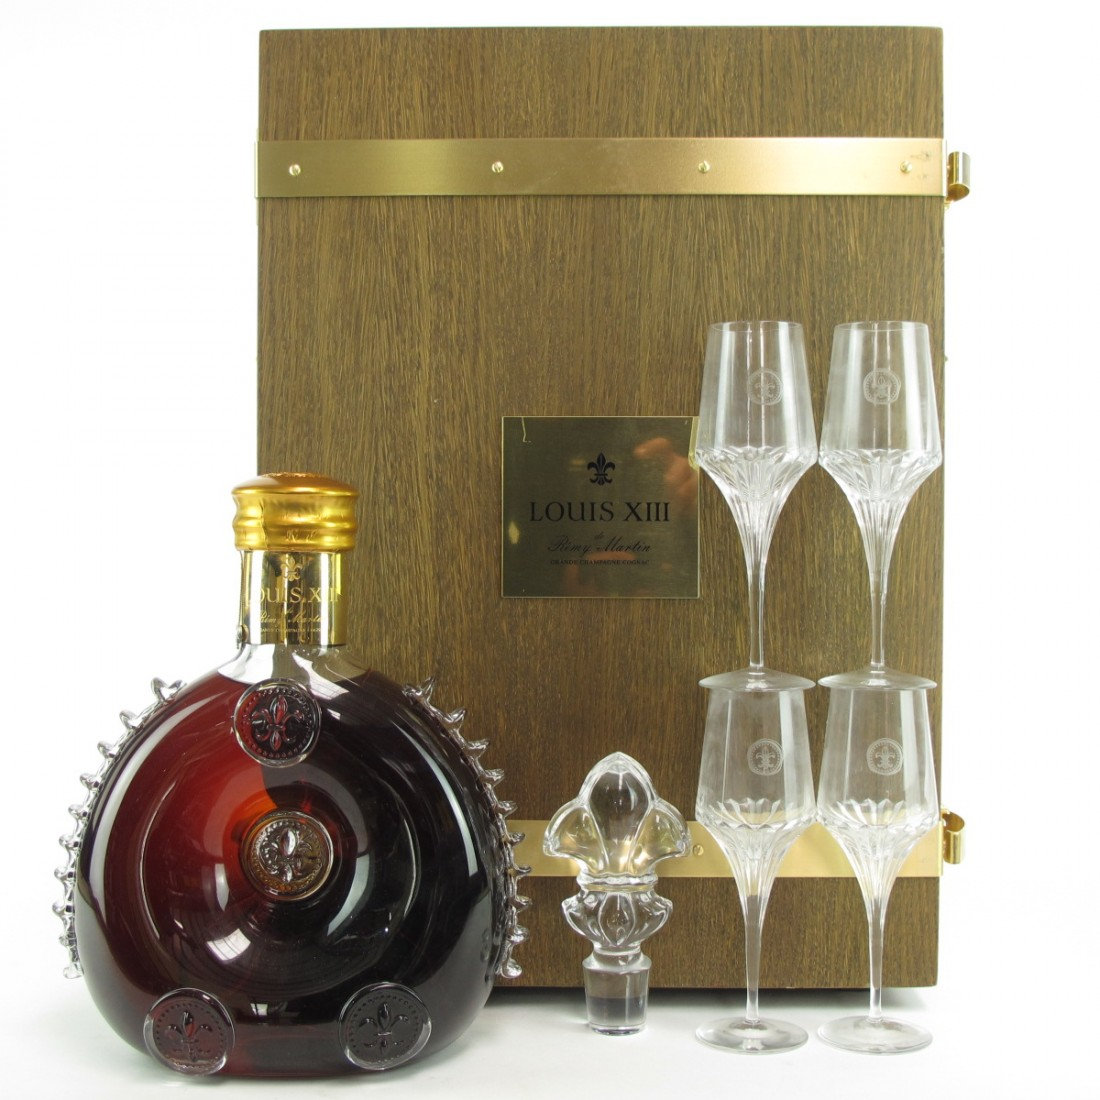 Remy Martin Louis Xiii Cognac Tres Vieille 3 Litre Whisky Auctioneer